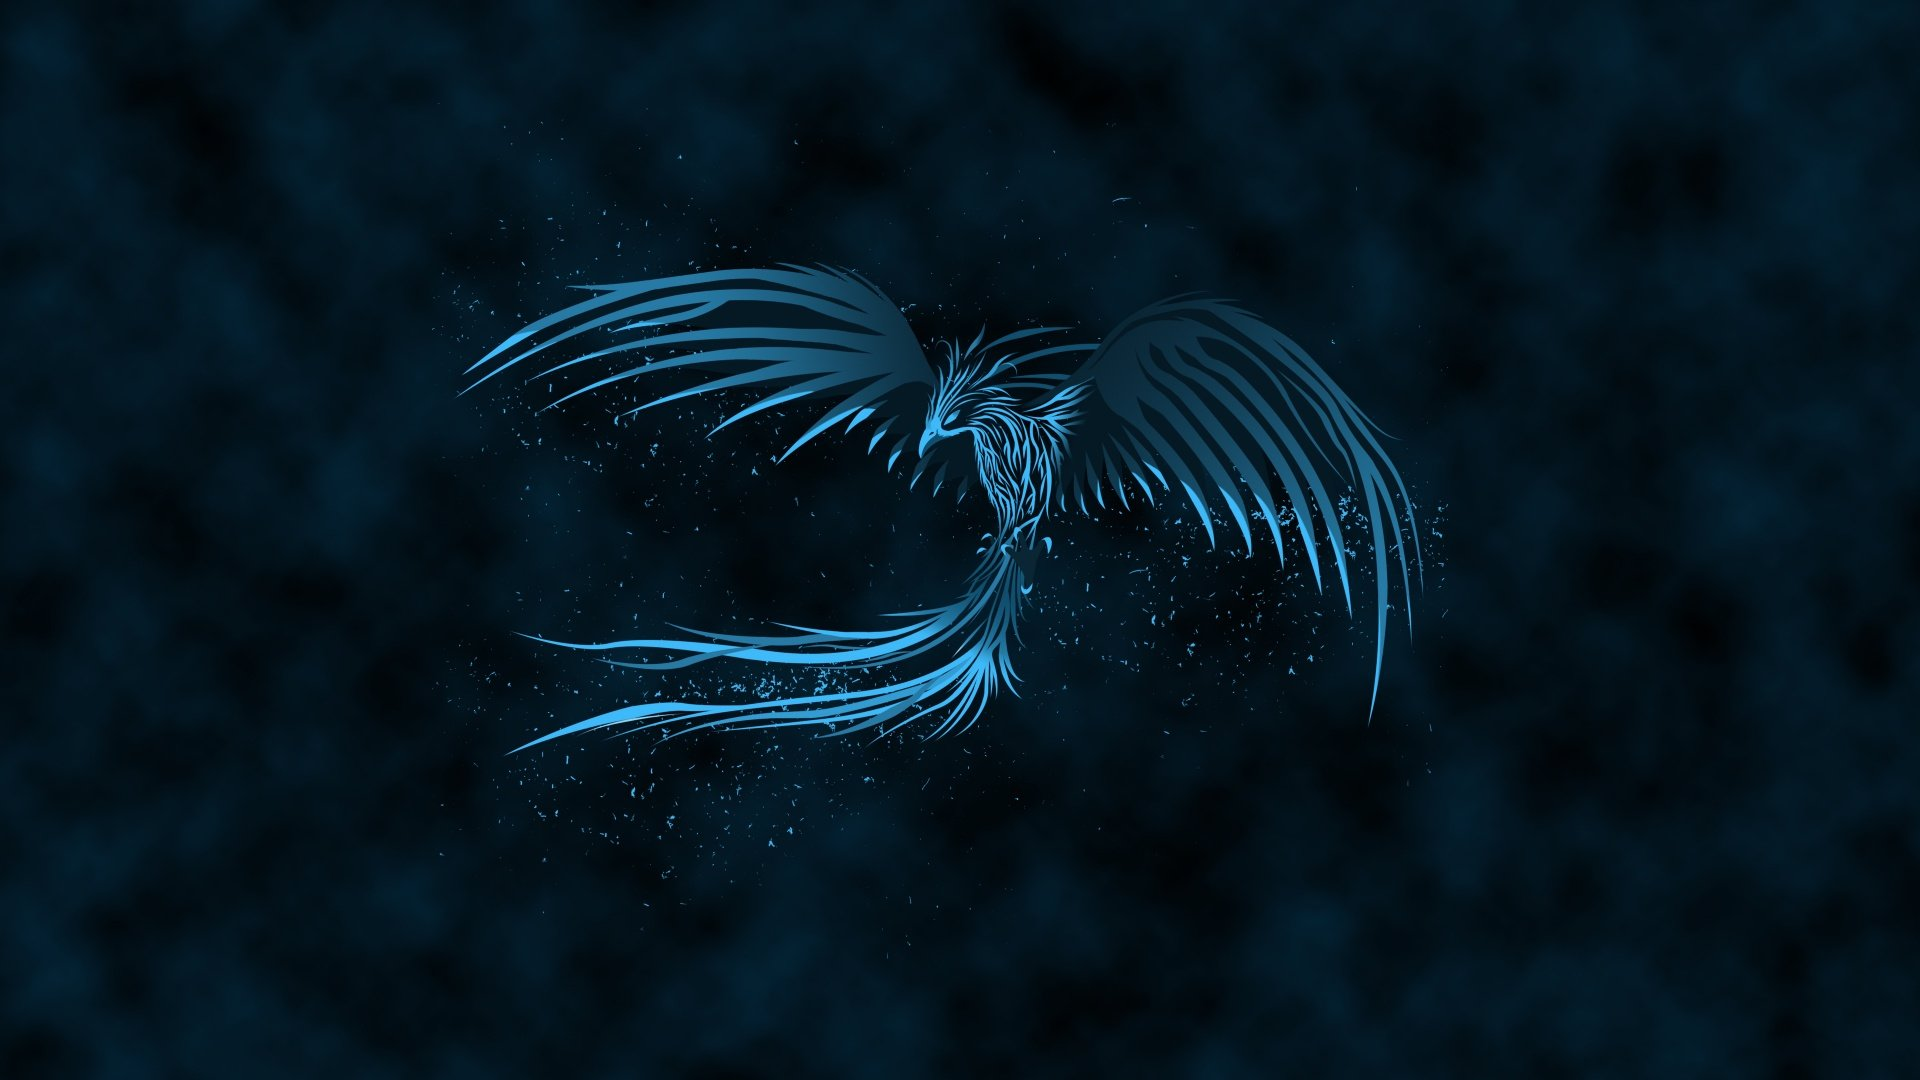 Blue Phoenix Full HD Wallpaper And Background Image